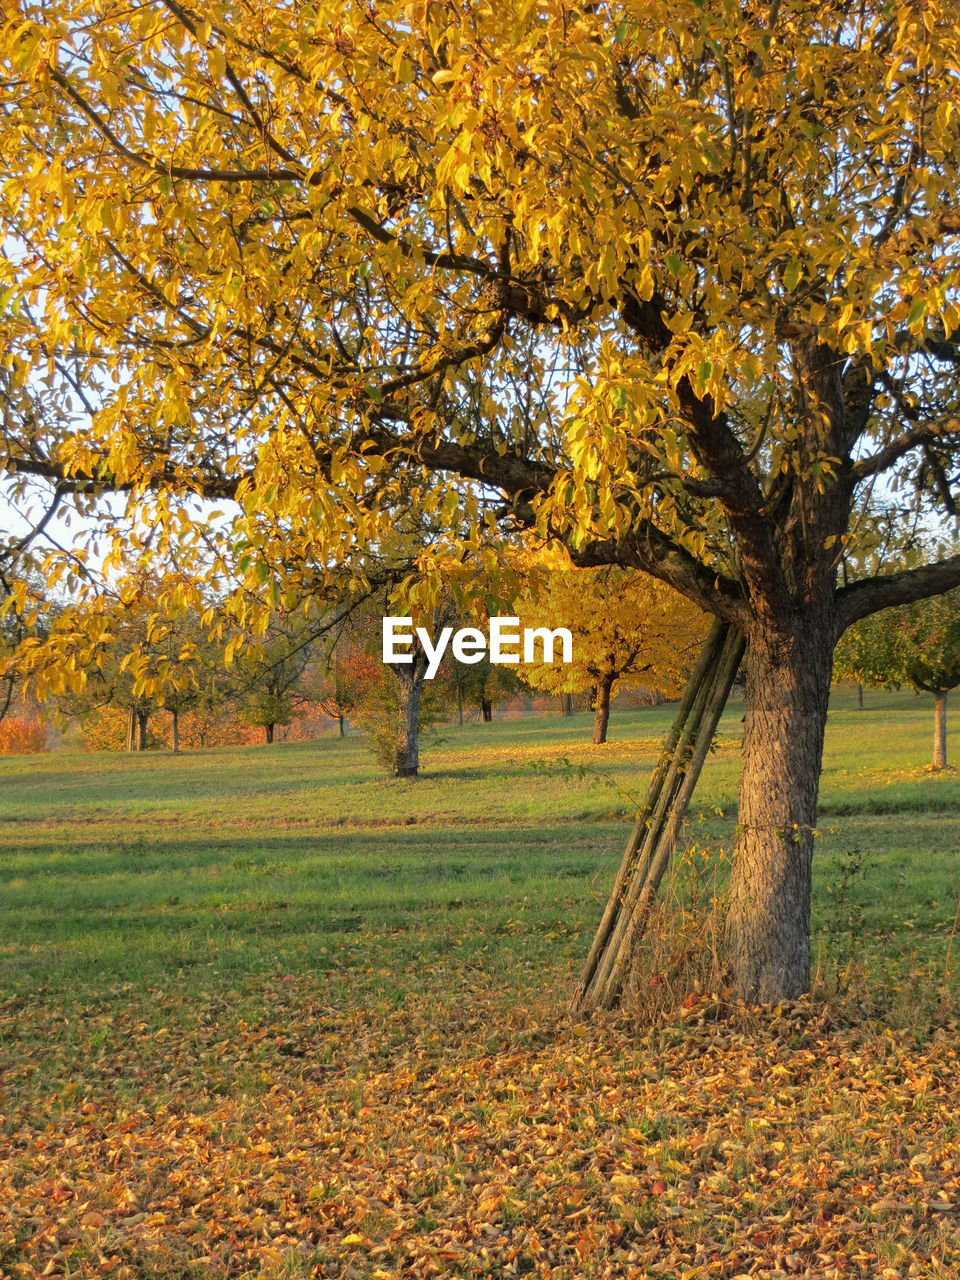 autumn, tree, leaf, change, nature, beauty in nature, field, landscape, no people, scenics, grass, outdoors, tranquility, day, branch, yellow